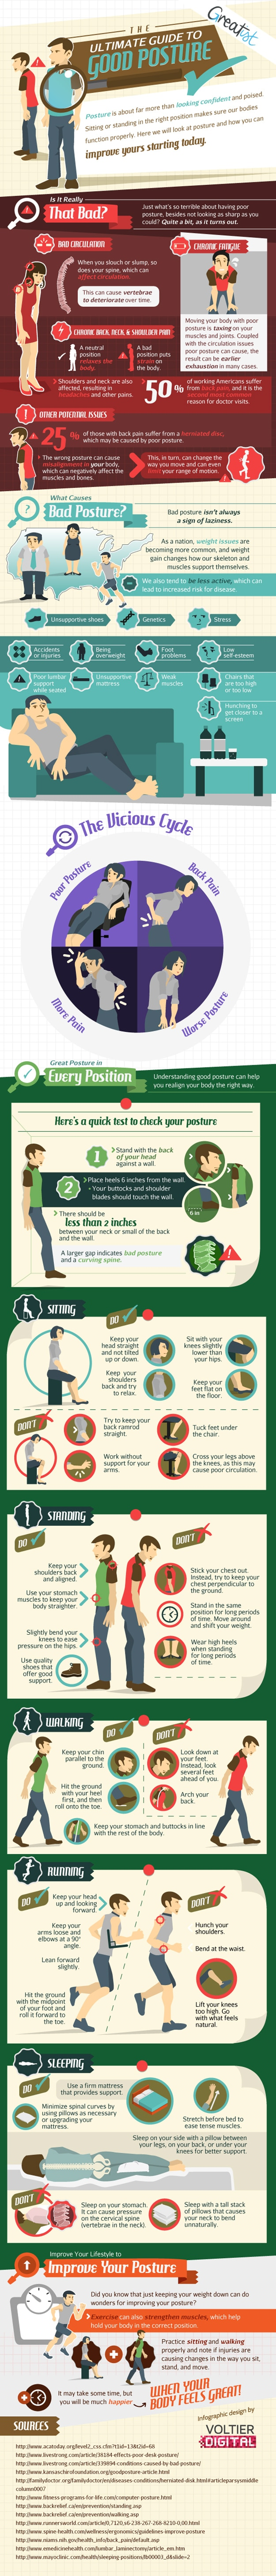 geek-guide-improving-bad-posture